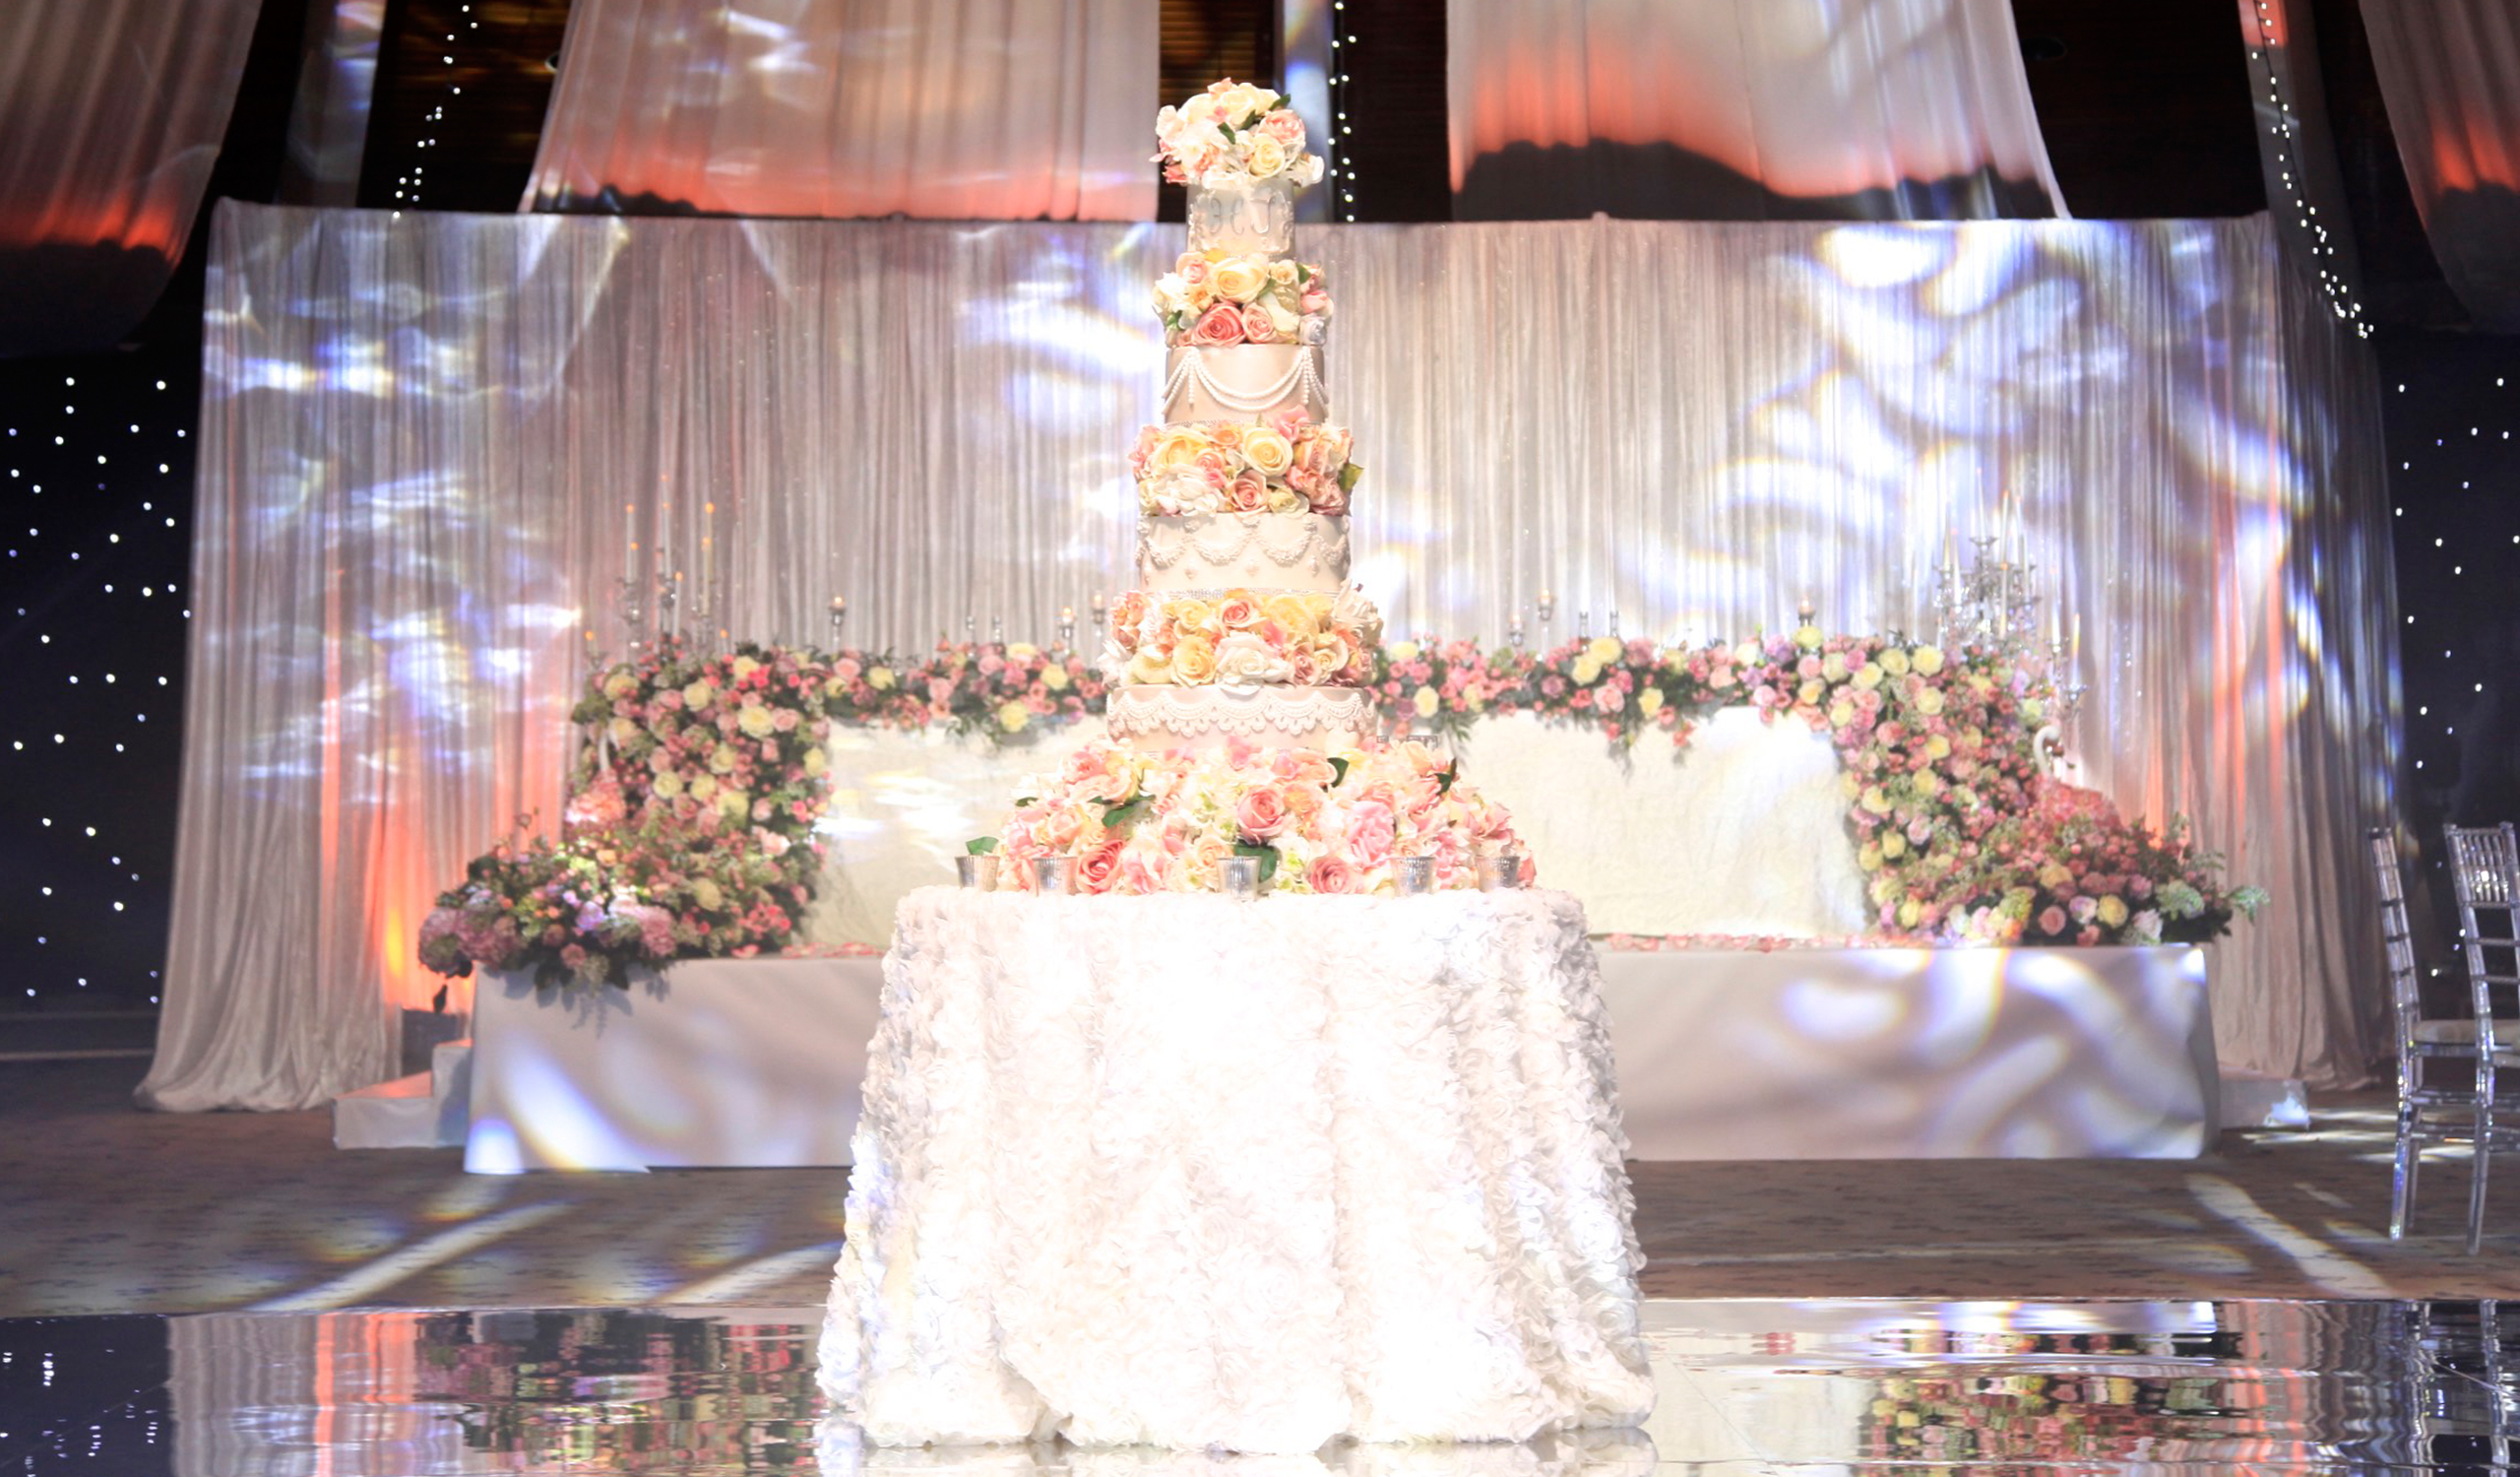 Mesmerizing Tower Wedding Cake